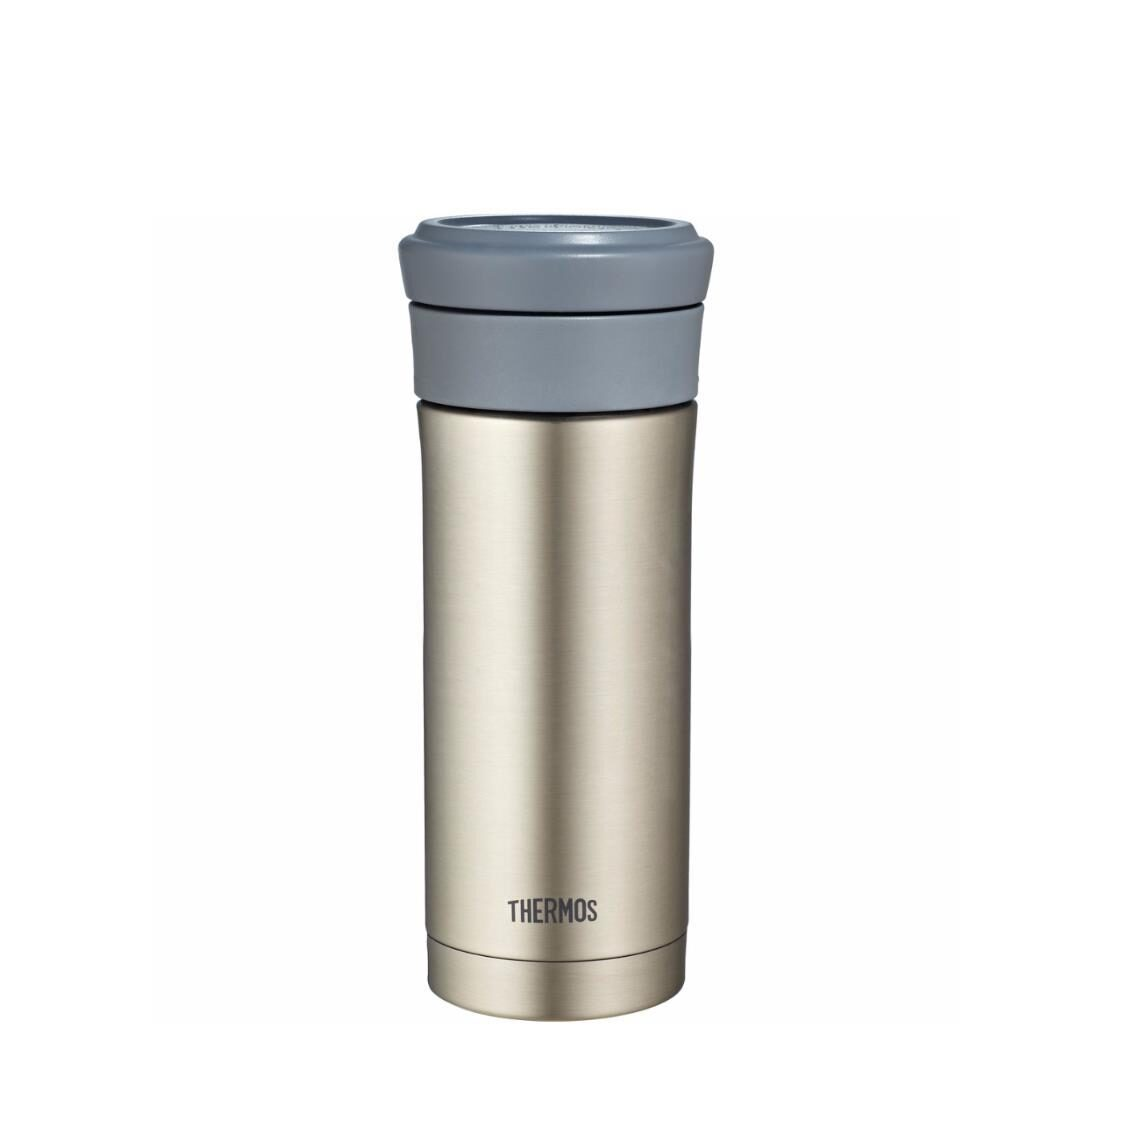 Thermos Stainless Steel Tumbler with Strainer Stainless Black 500ml